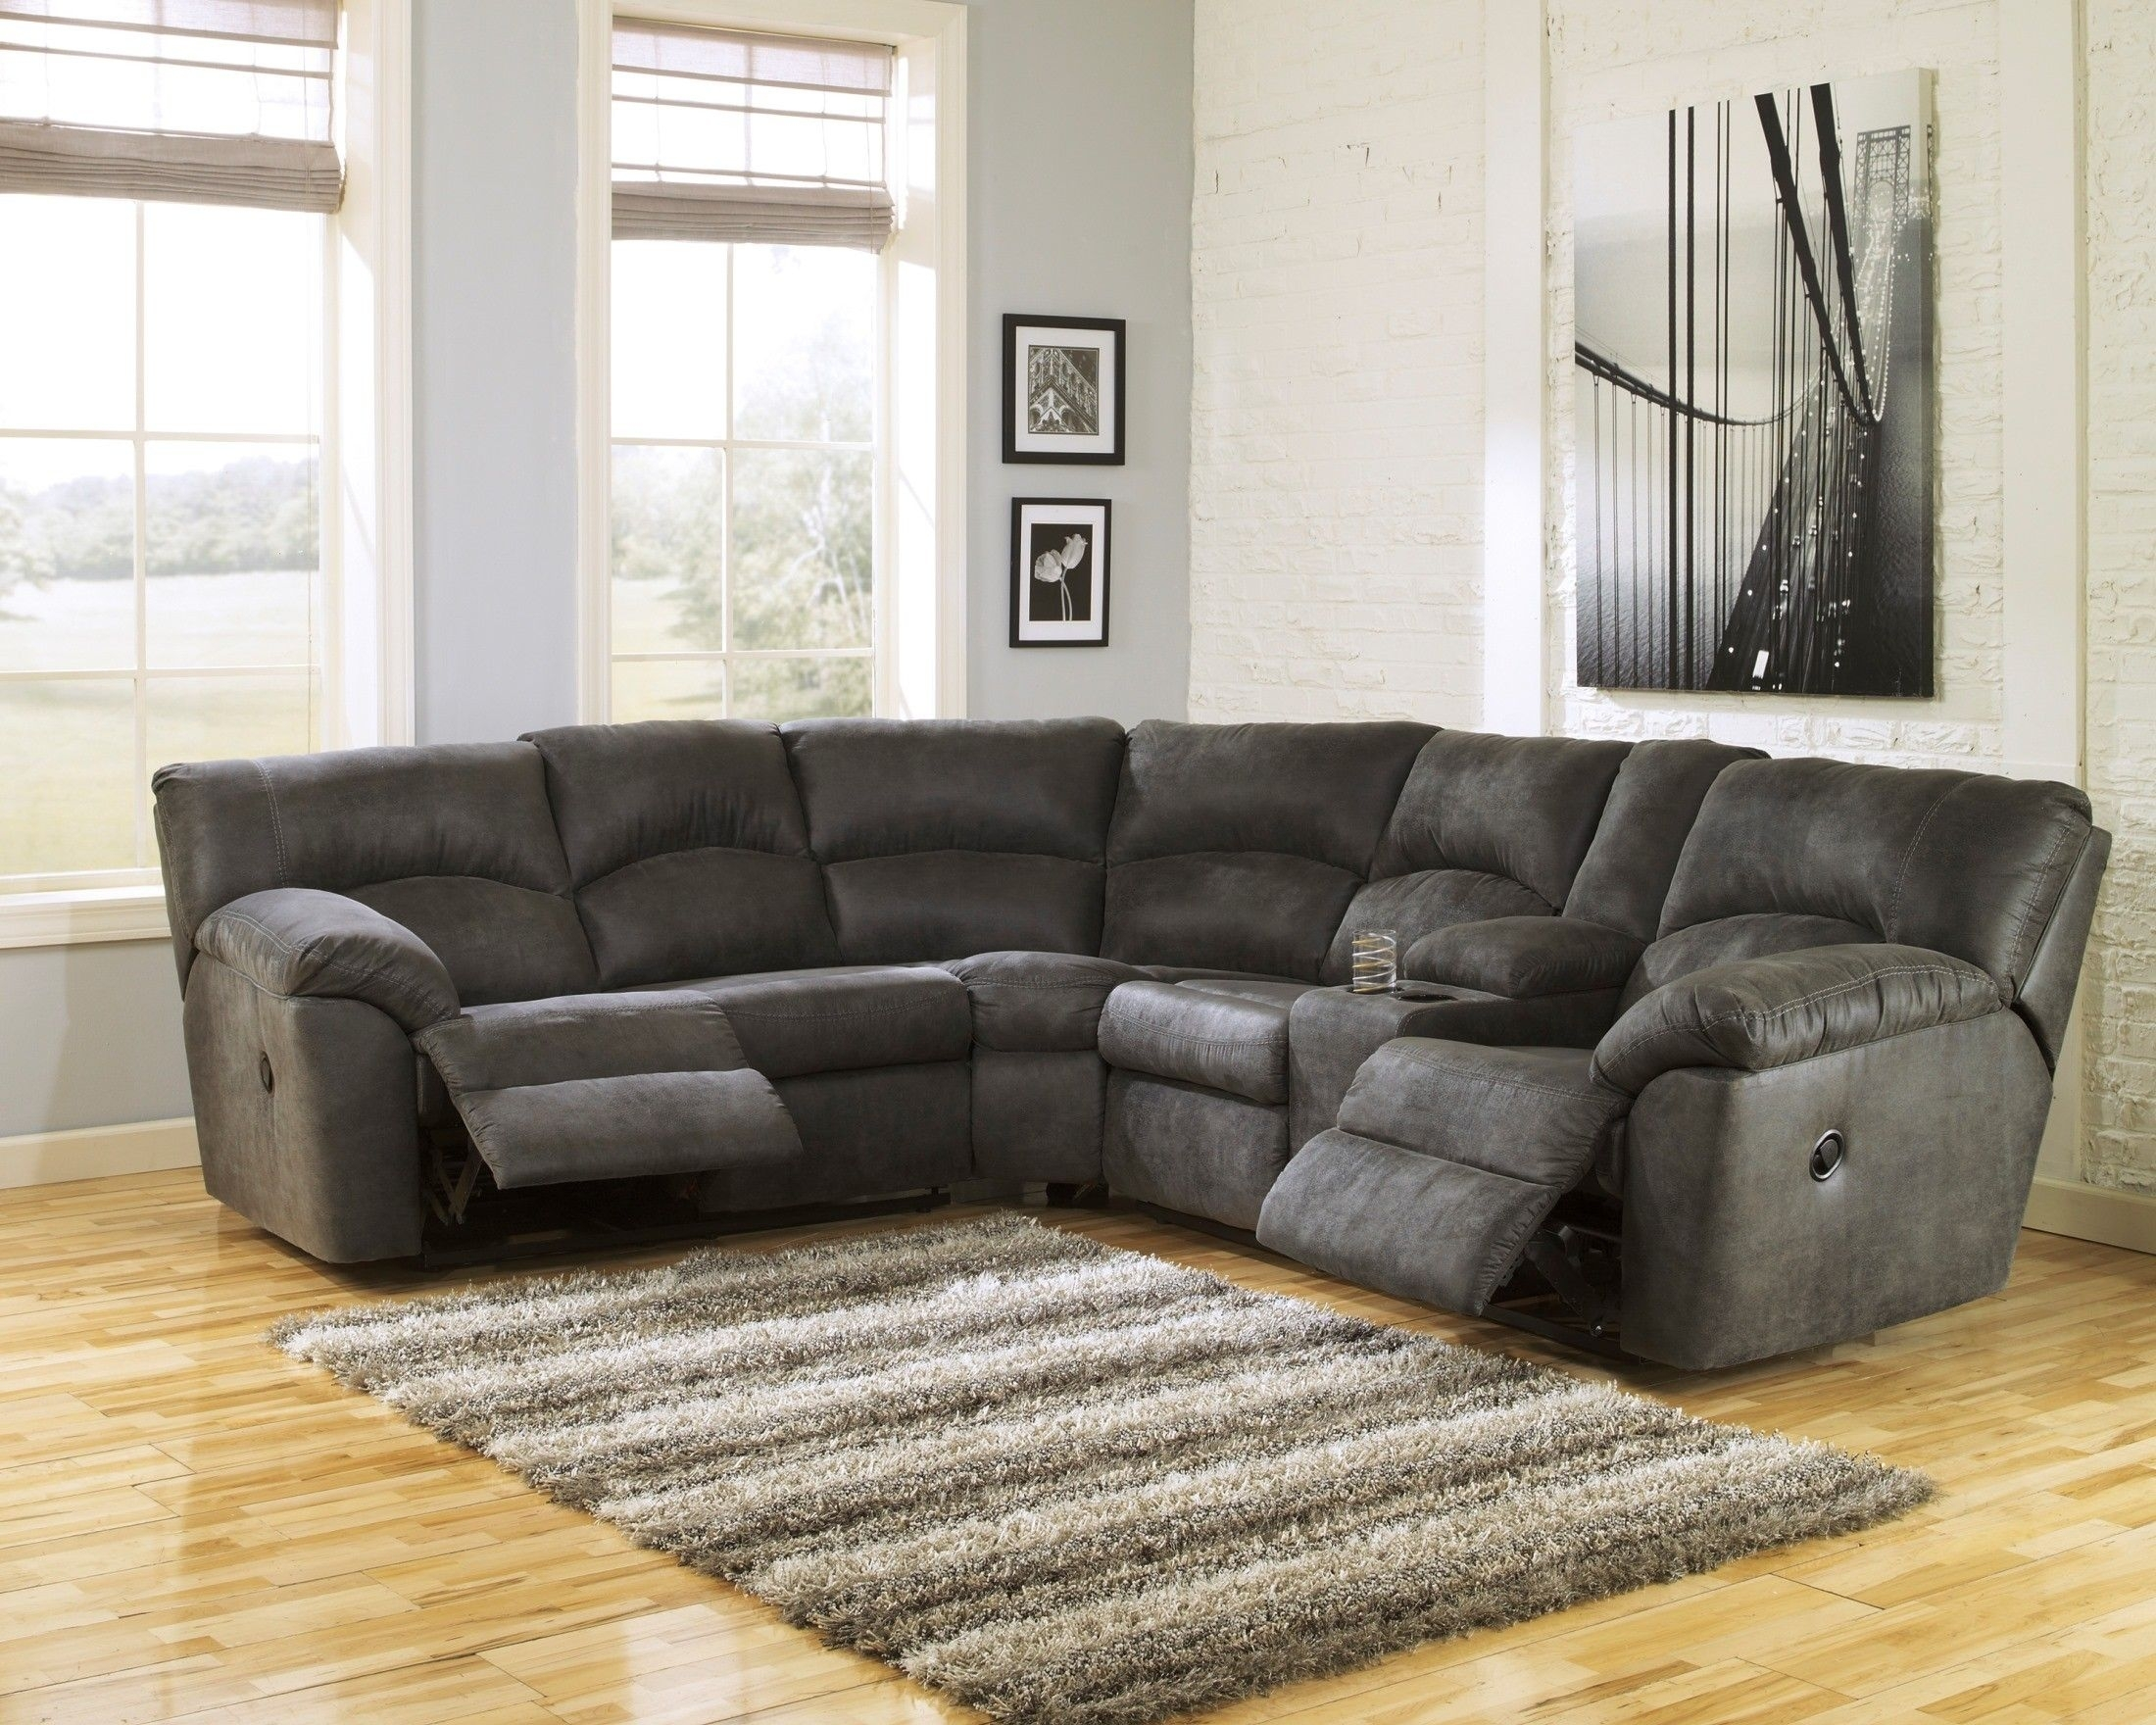 Tambo Pewter, Asl 27801 48 49, Ashley Furniture | My Livingroom For Norfolk Chocolate 6 Piece Sectionals With Laf Chaise (View 22 of 25)